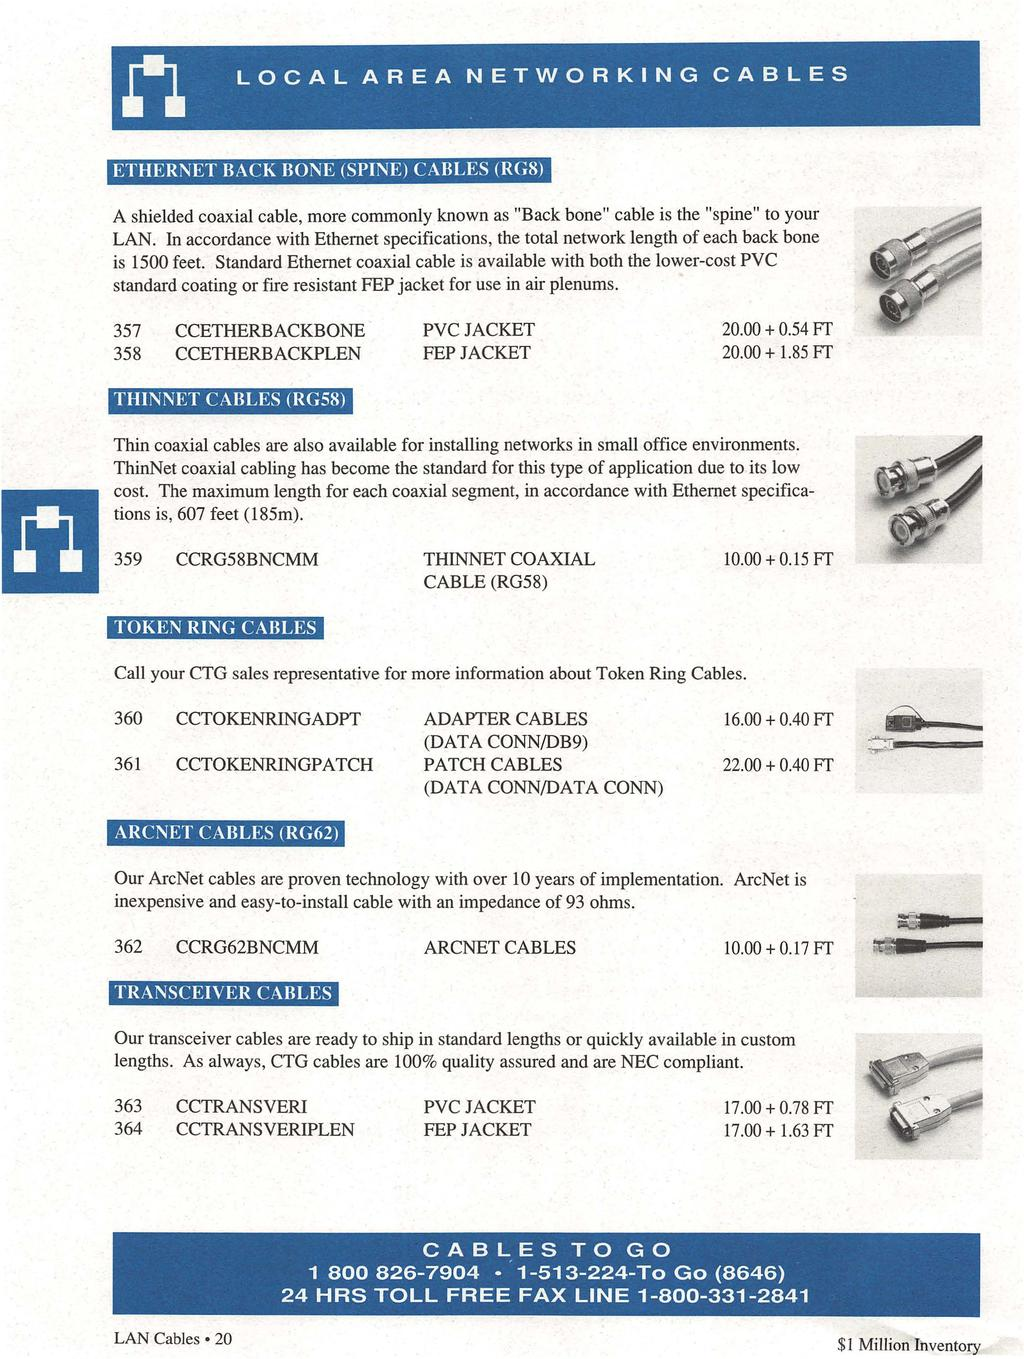 Gc Cables Tc Gusto Cable Assemblies Computer Accessories Scsi Super Flat Cat5e Shielded Network Thin Ribbon Patch Cord N Local Area Networking Ethernet Back Bone Spine Rg8 A